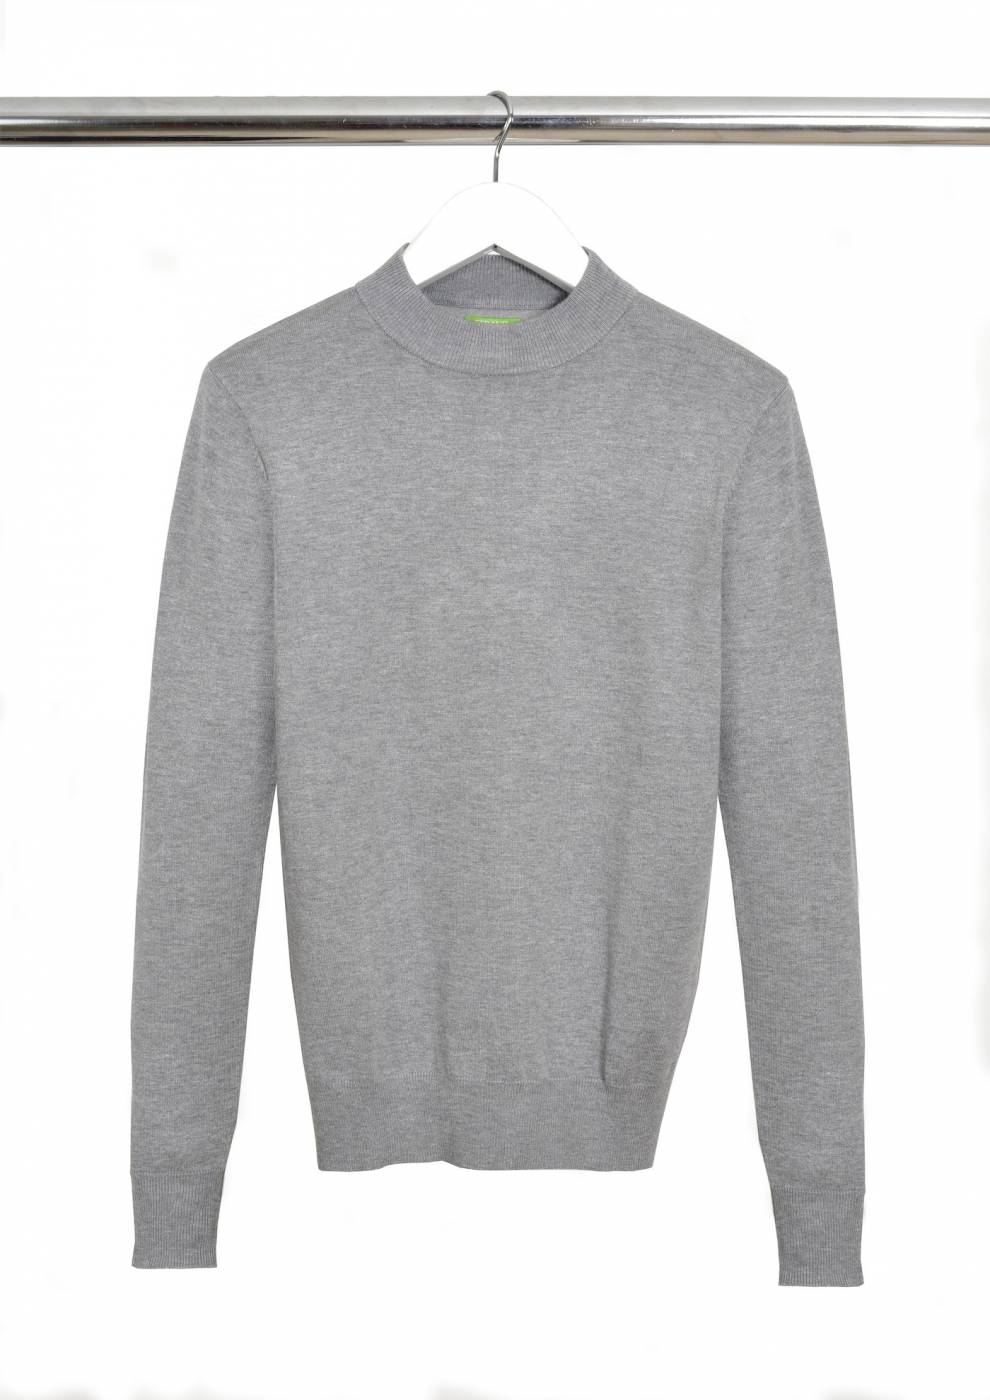 1.Tommy-Grey-small